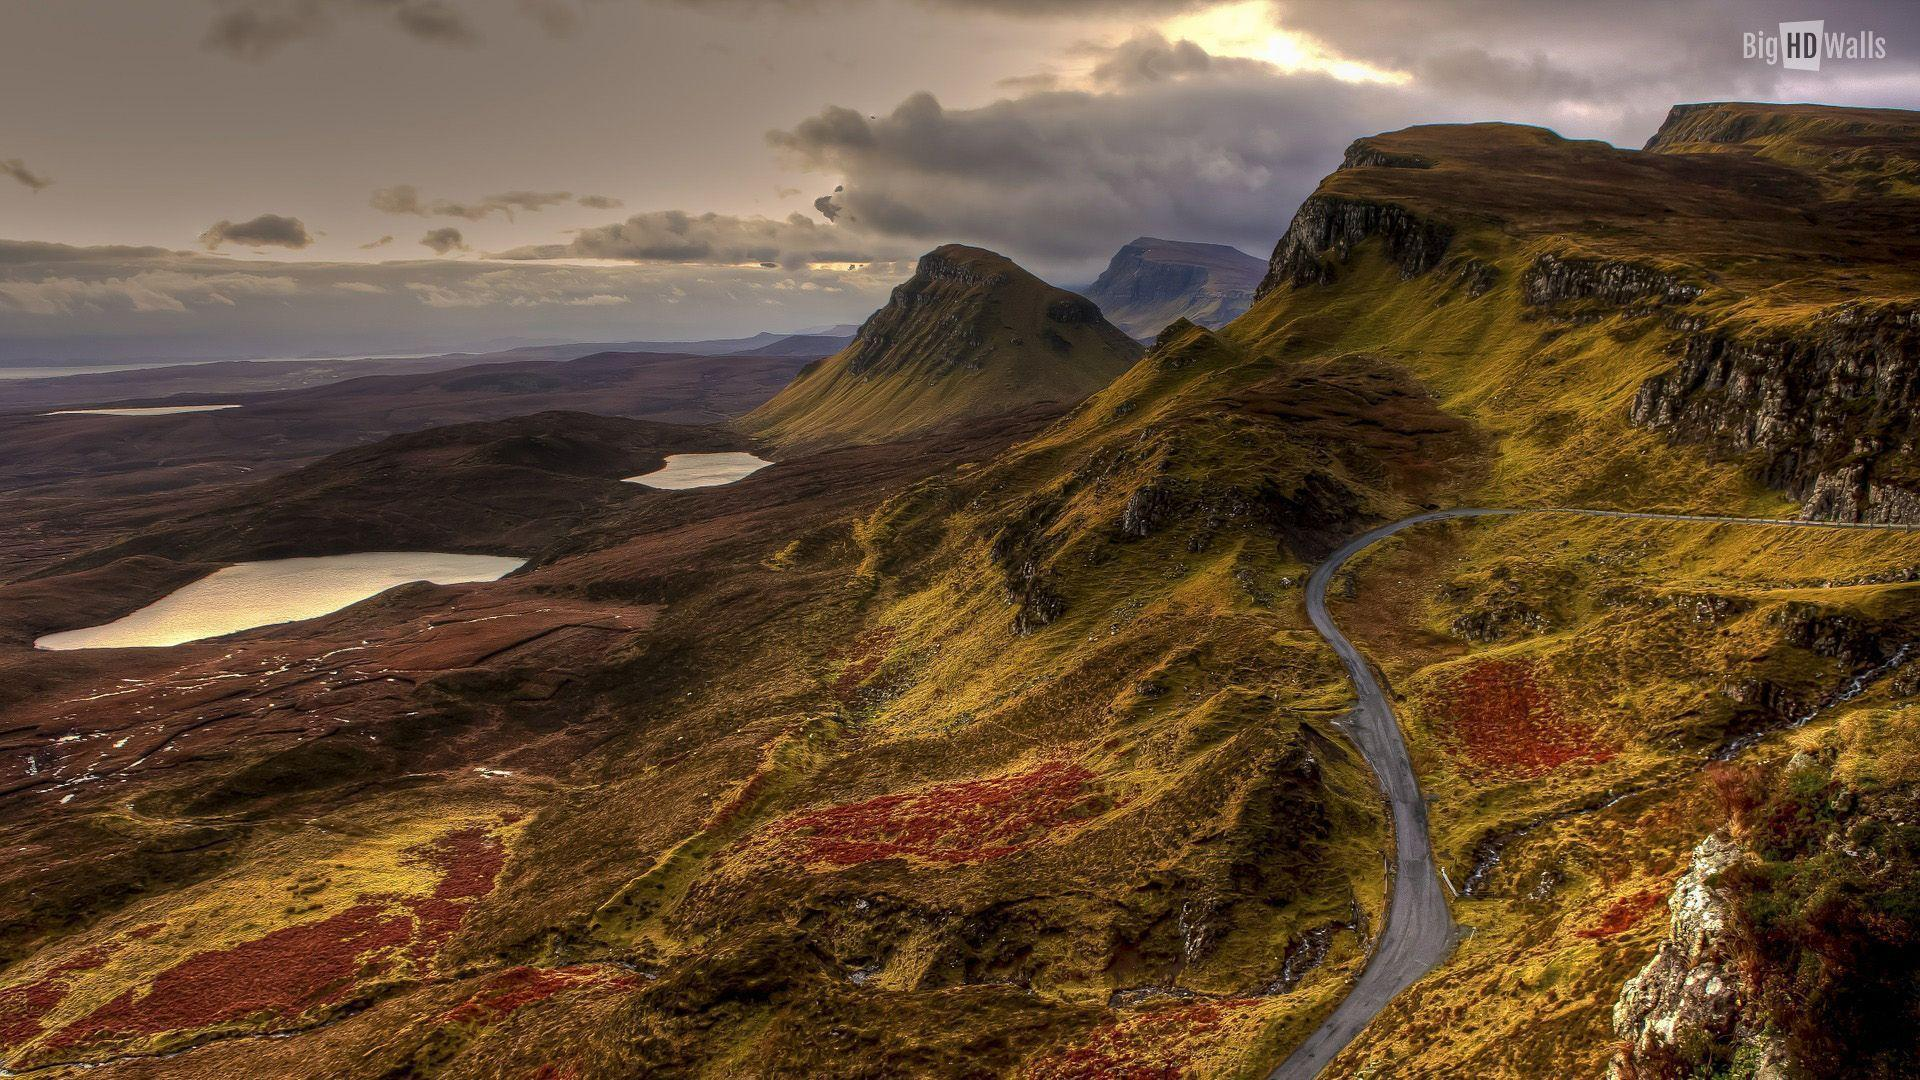 10 awesome Landscape Pictures from Scotland